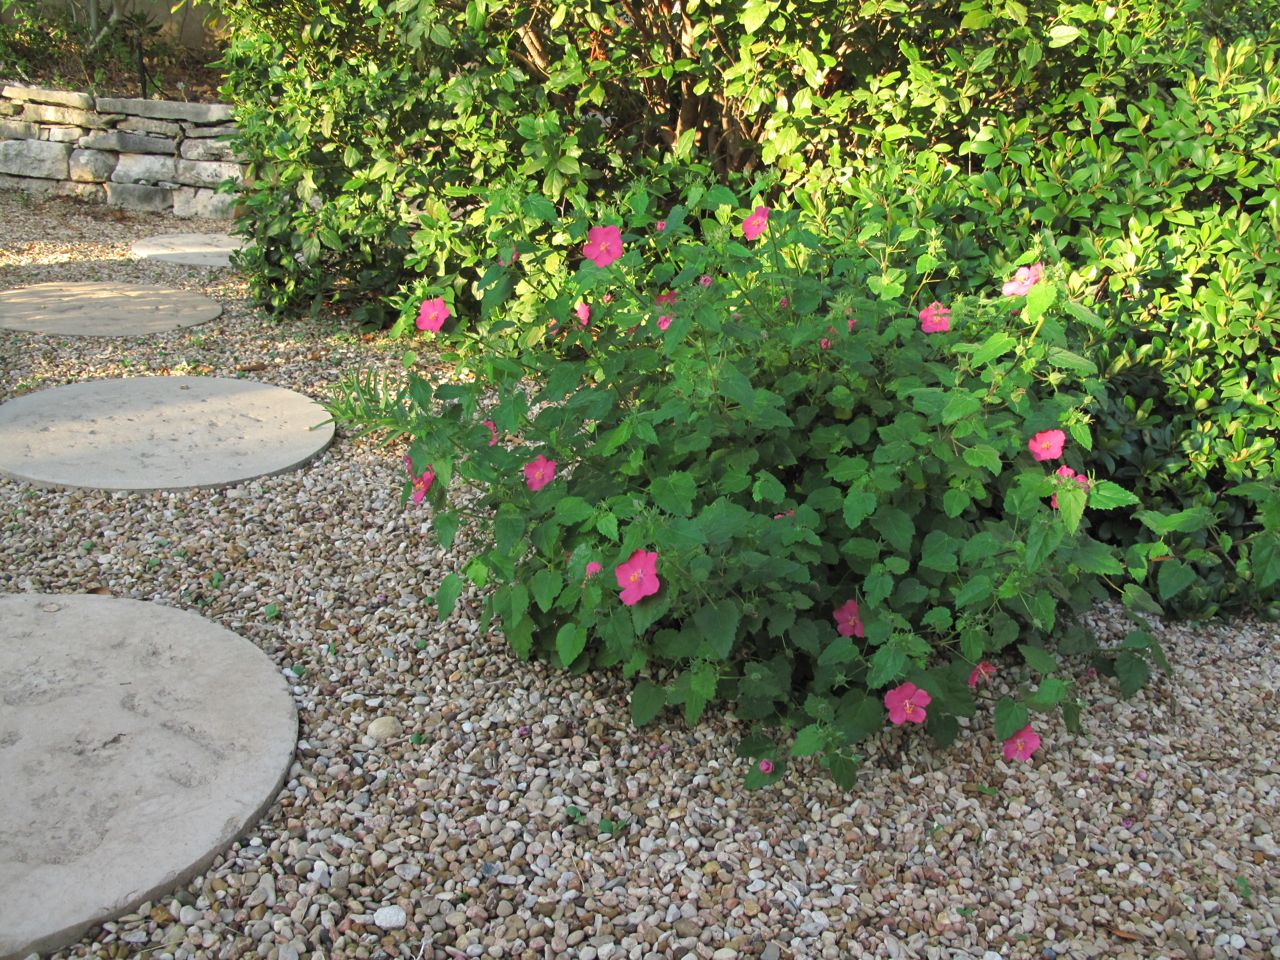 ROCK ROSE: TEXAS NATIVE PLANT WEEK OCT. 16th. -22nd. WHAT